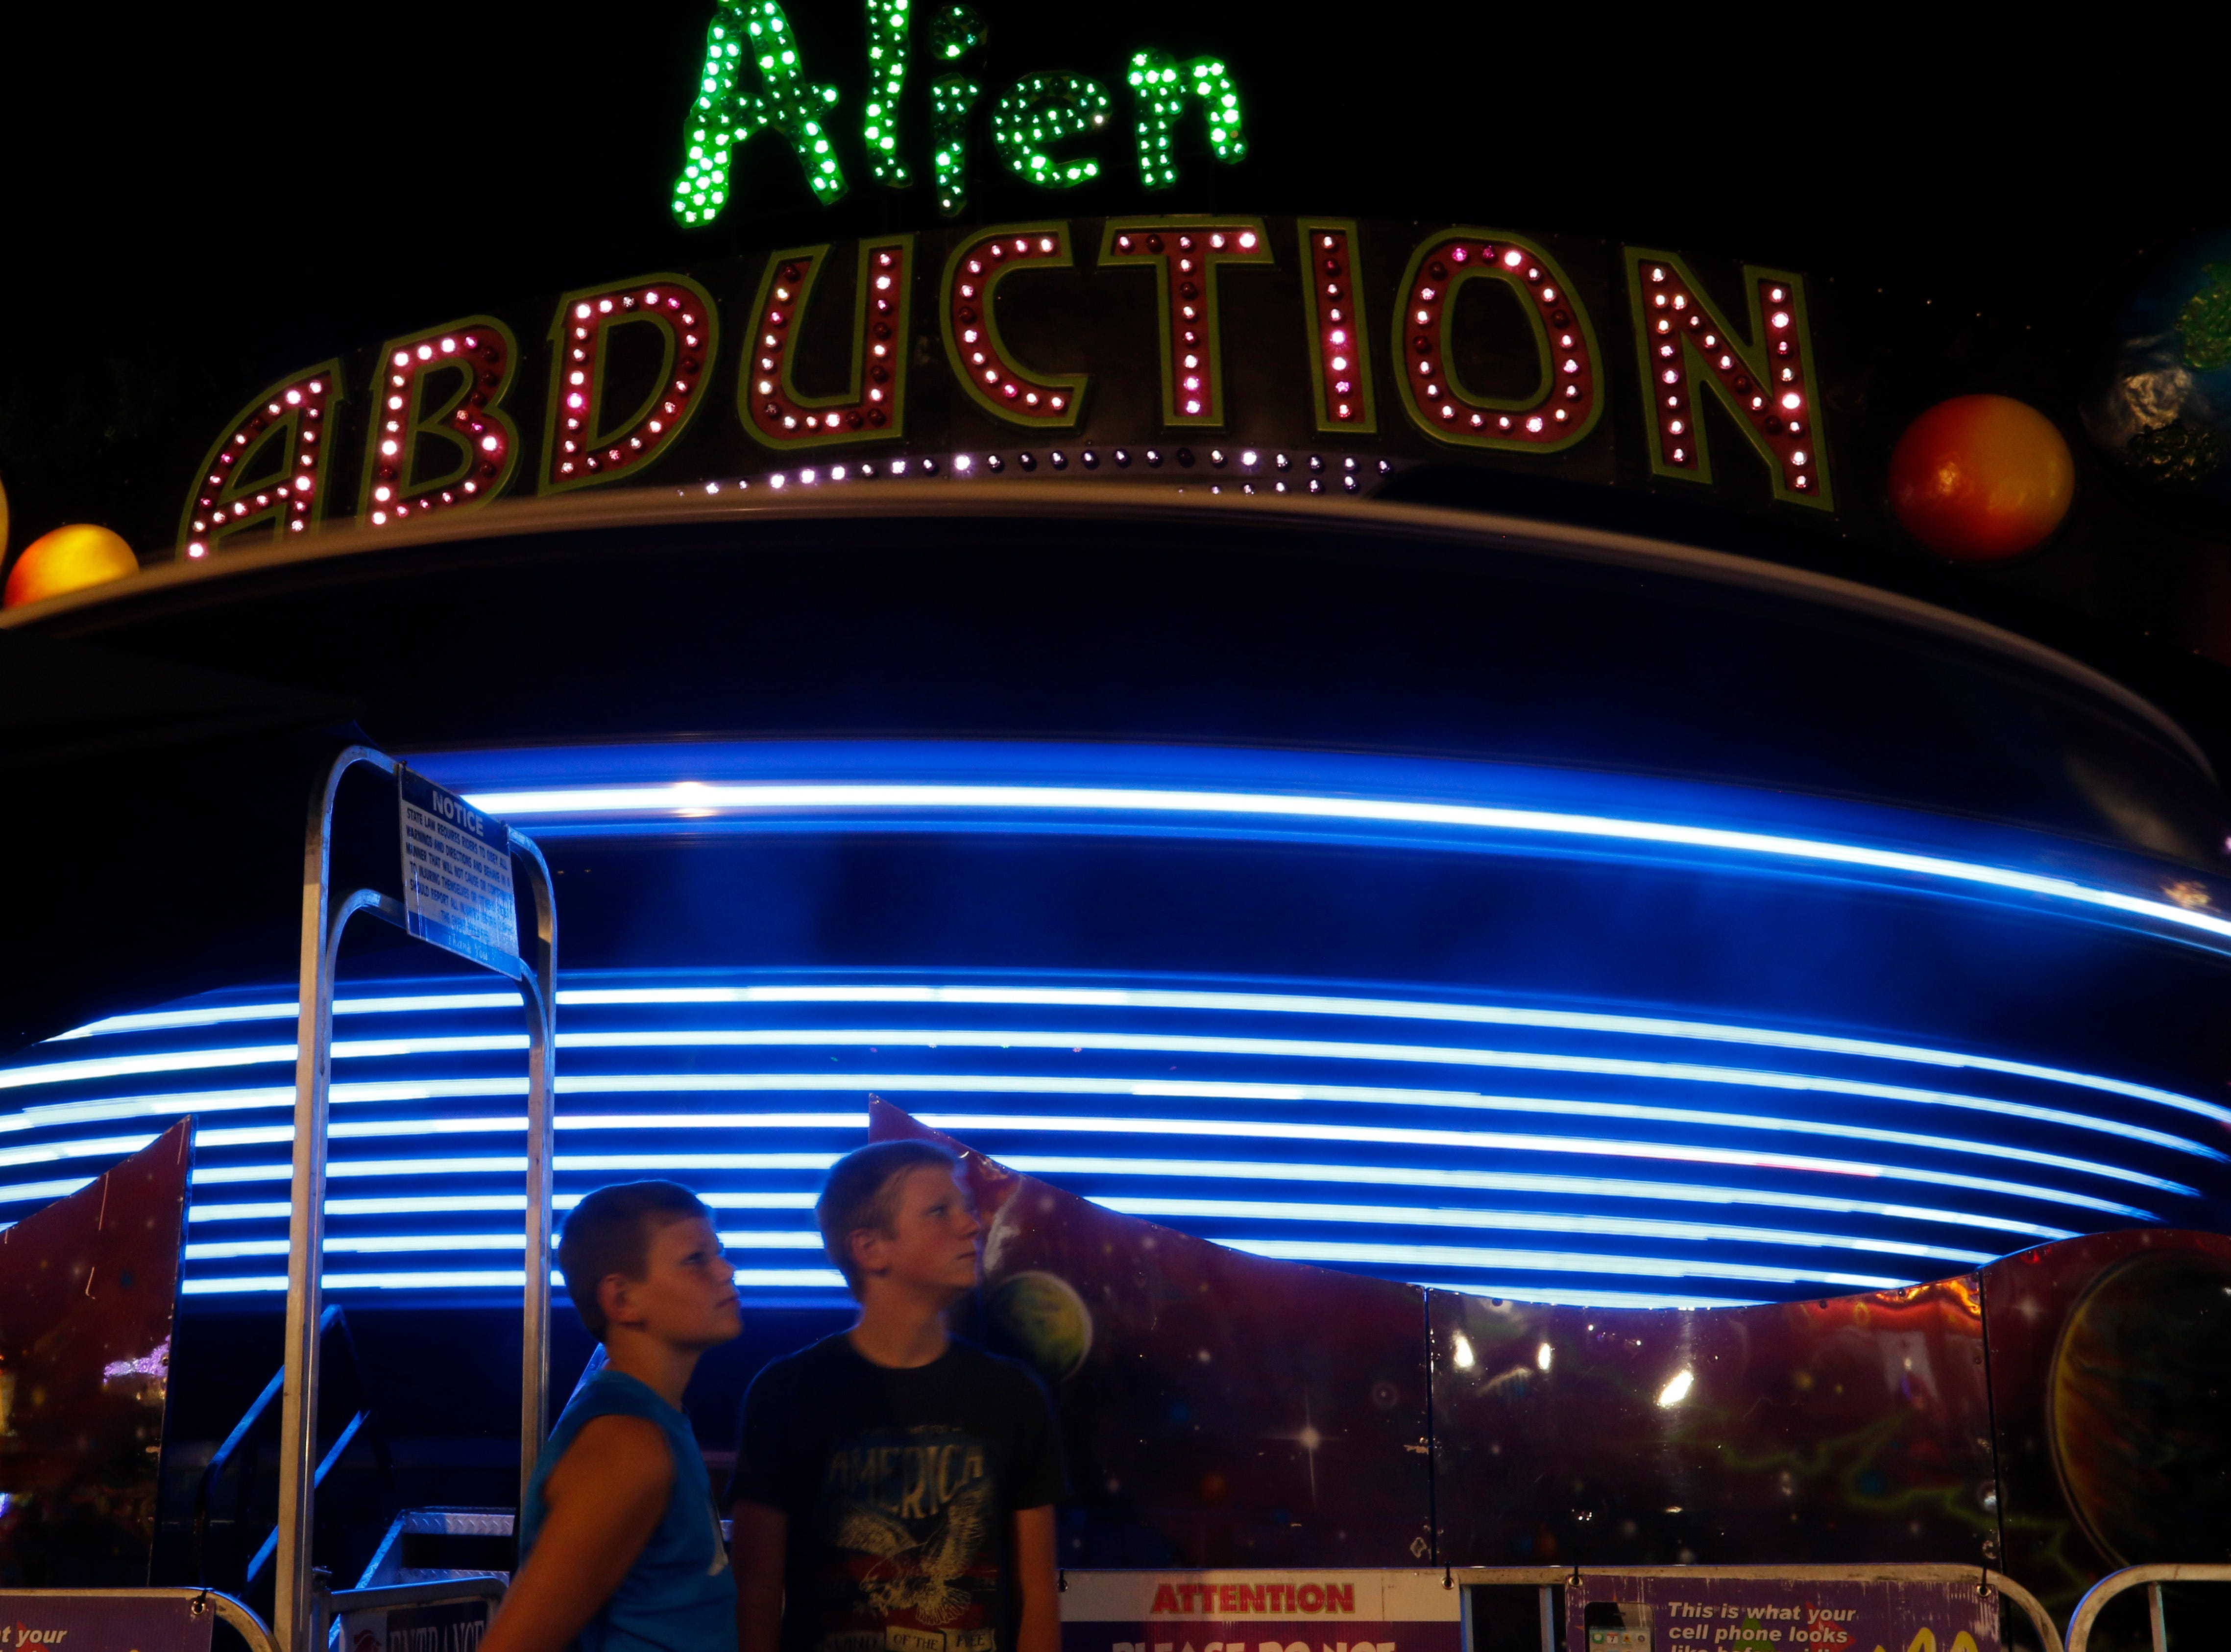 Seth Roewe, 12, left and Caleb Grambsch, 12, wait to ride the alien abduction at the Central Wisconsin State Fair in Marshfield Wednesday, August 22, 2018.